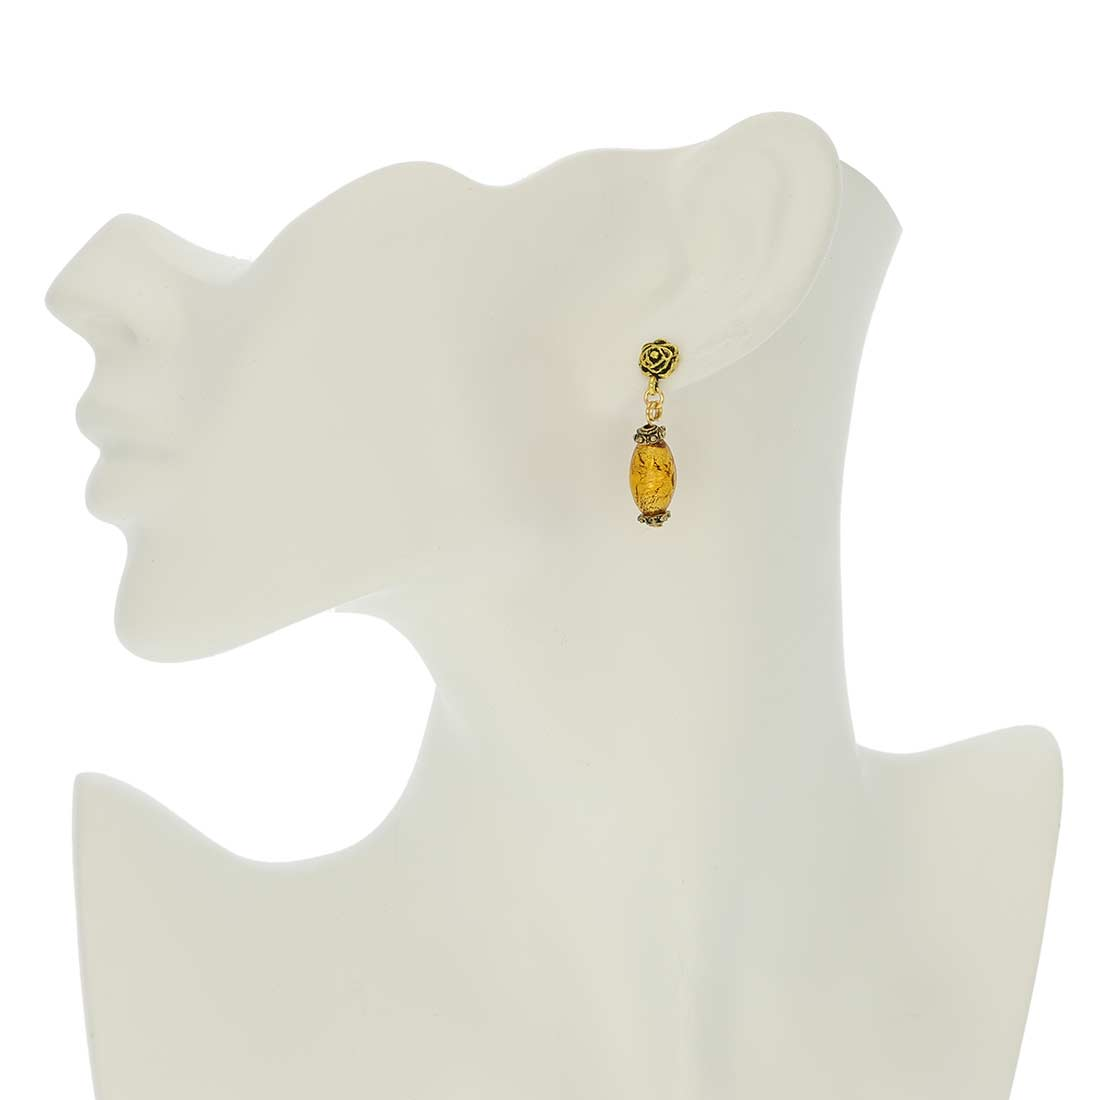 Antico Tesoro olives earrings -amber gold